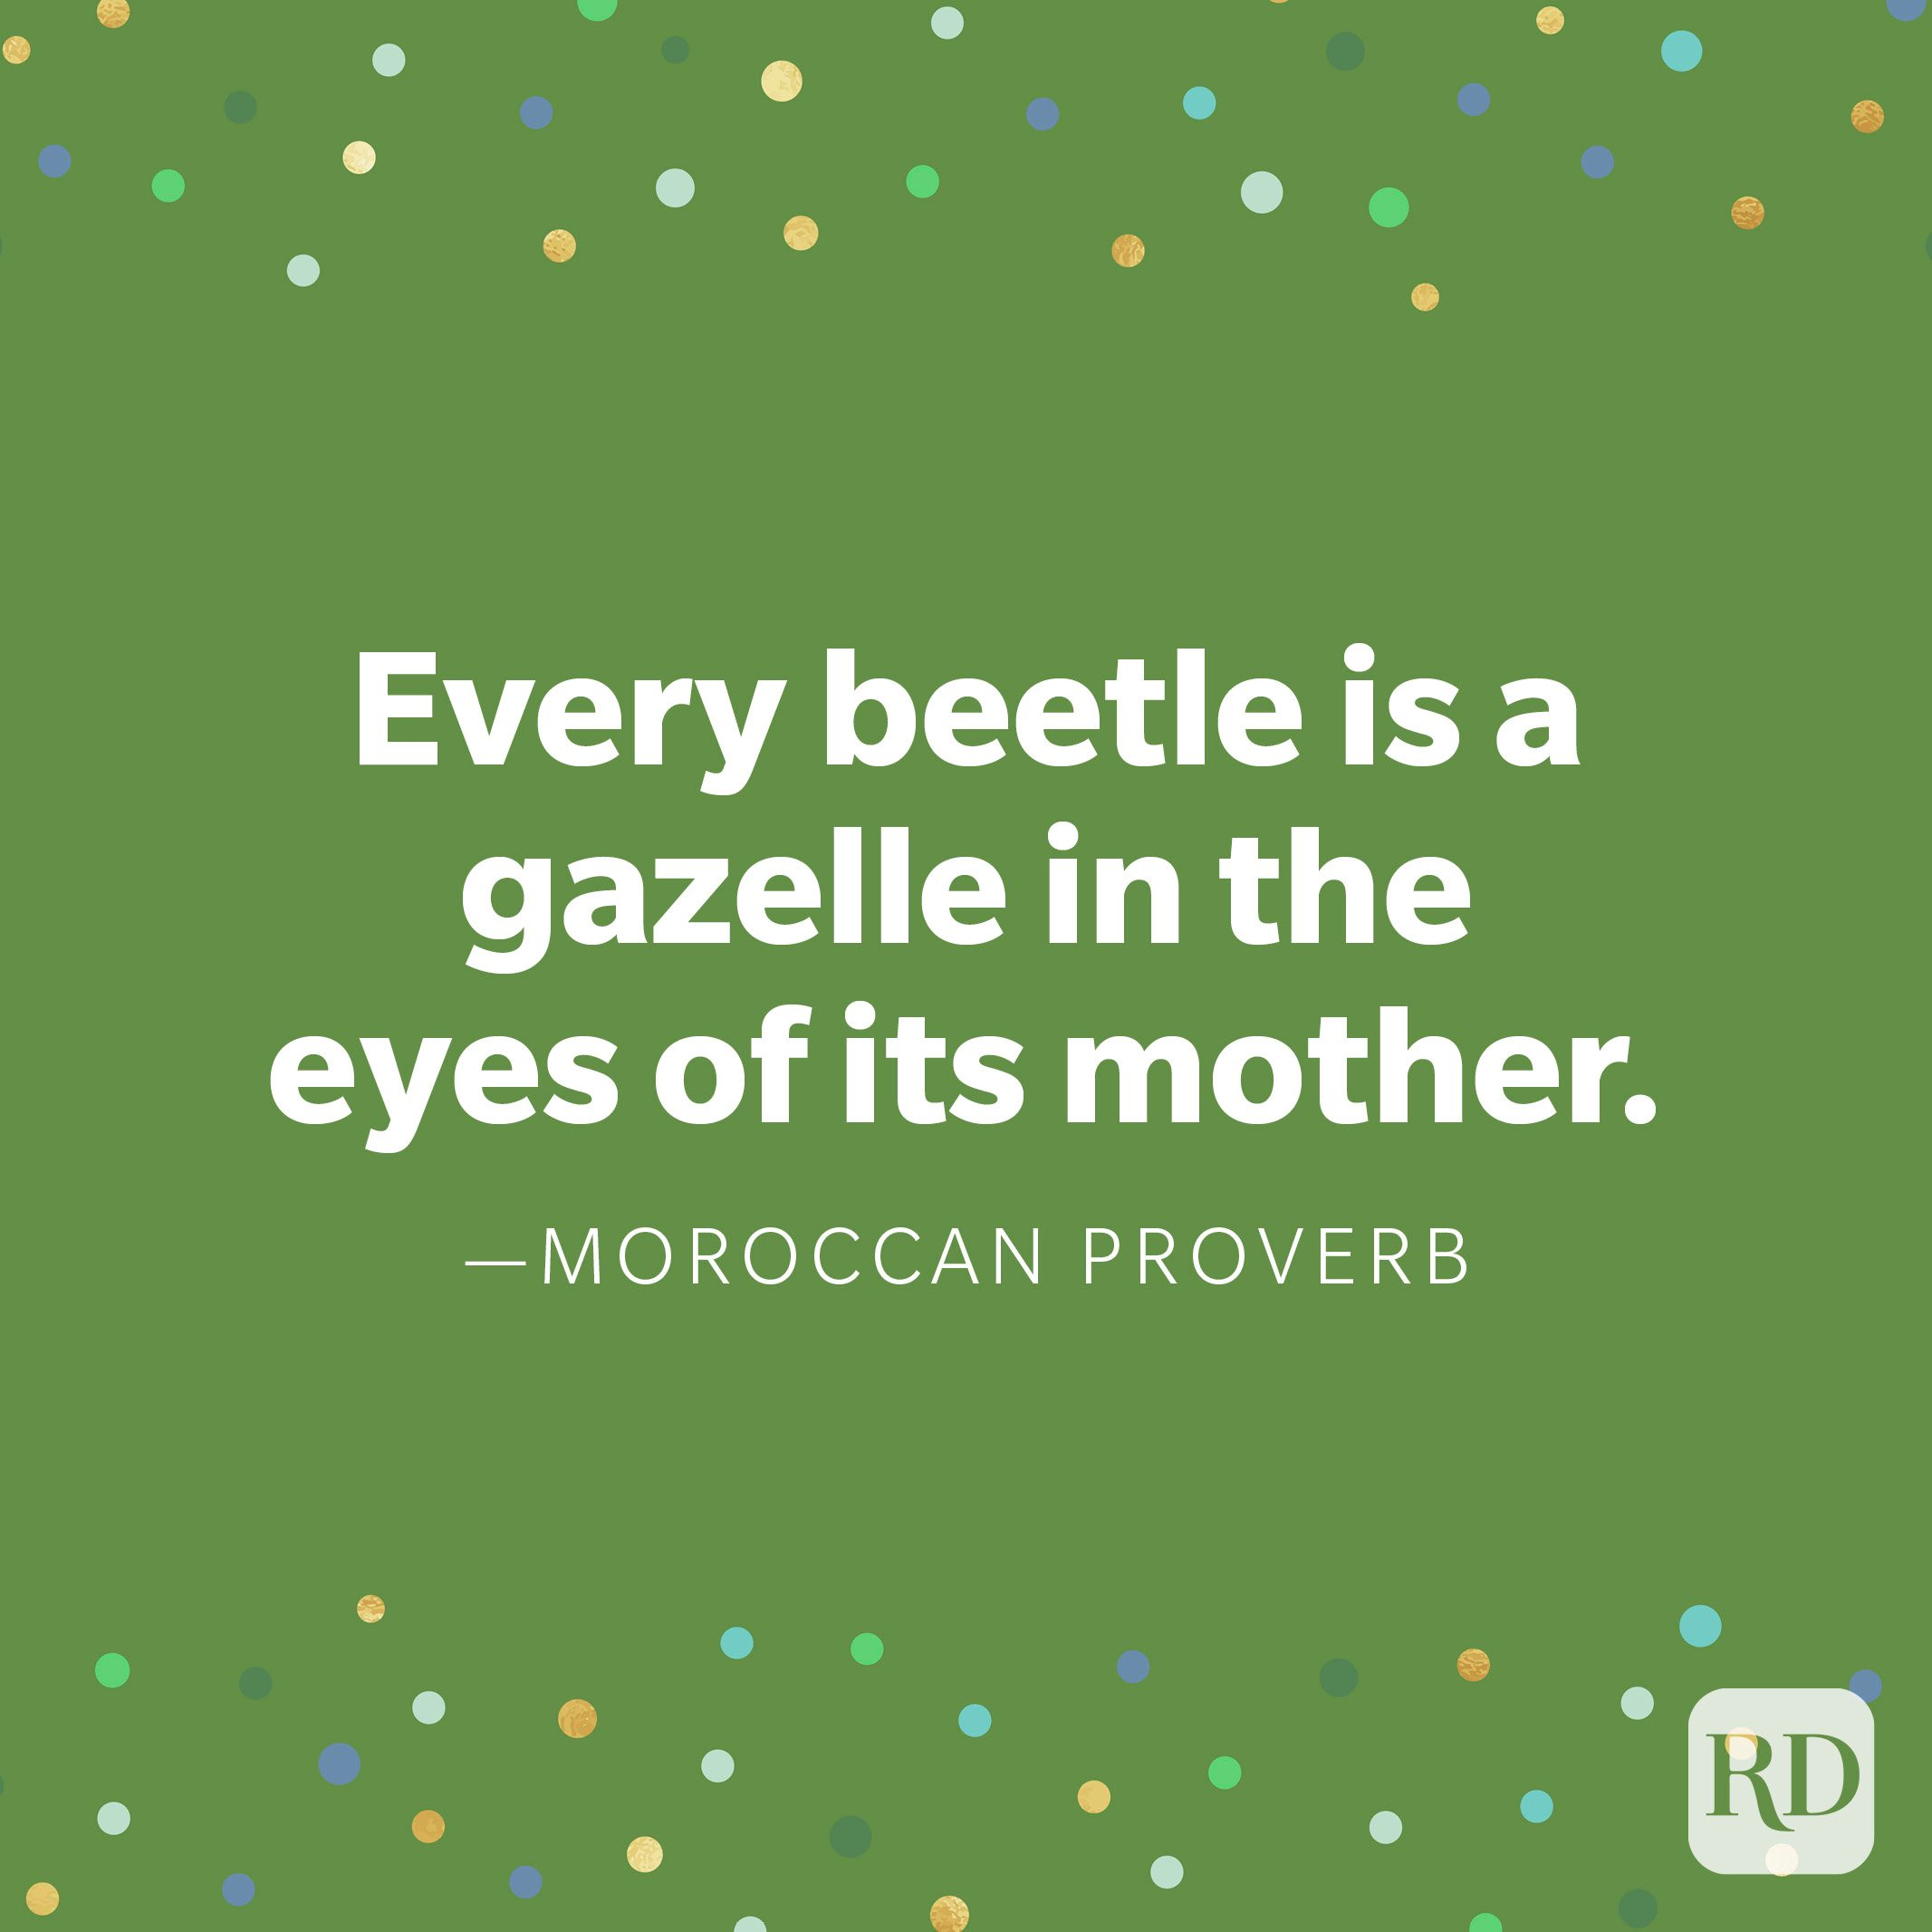 """Every beetle is a gazelle in the eyes of its mother."" —Moroccan proverb"